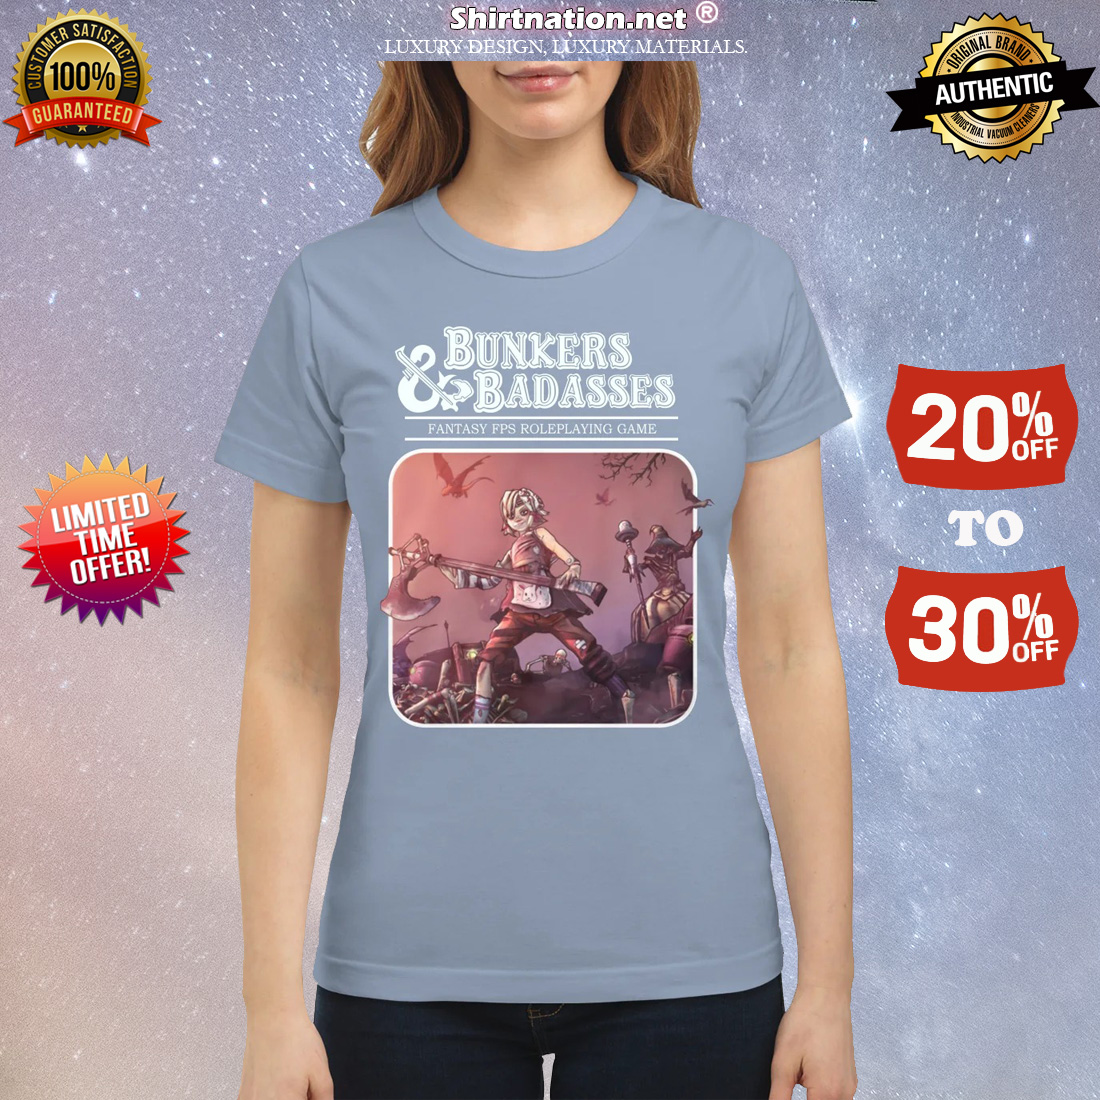 Bunkers and badasses fantasy fps game classic shirt